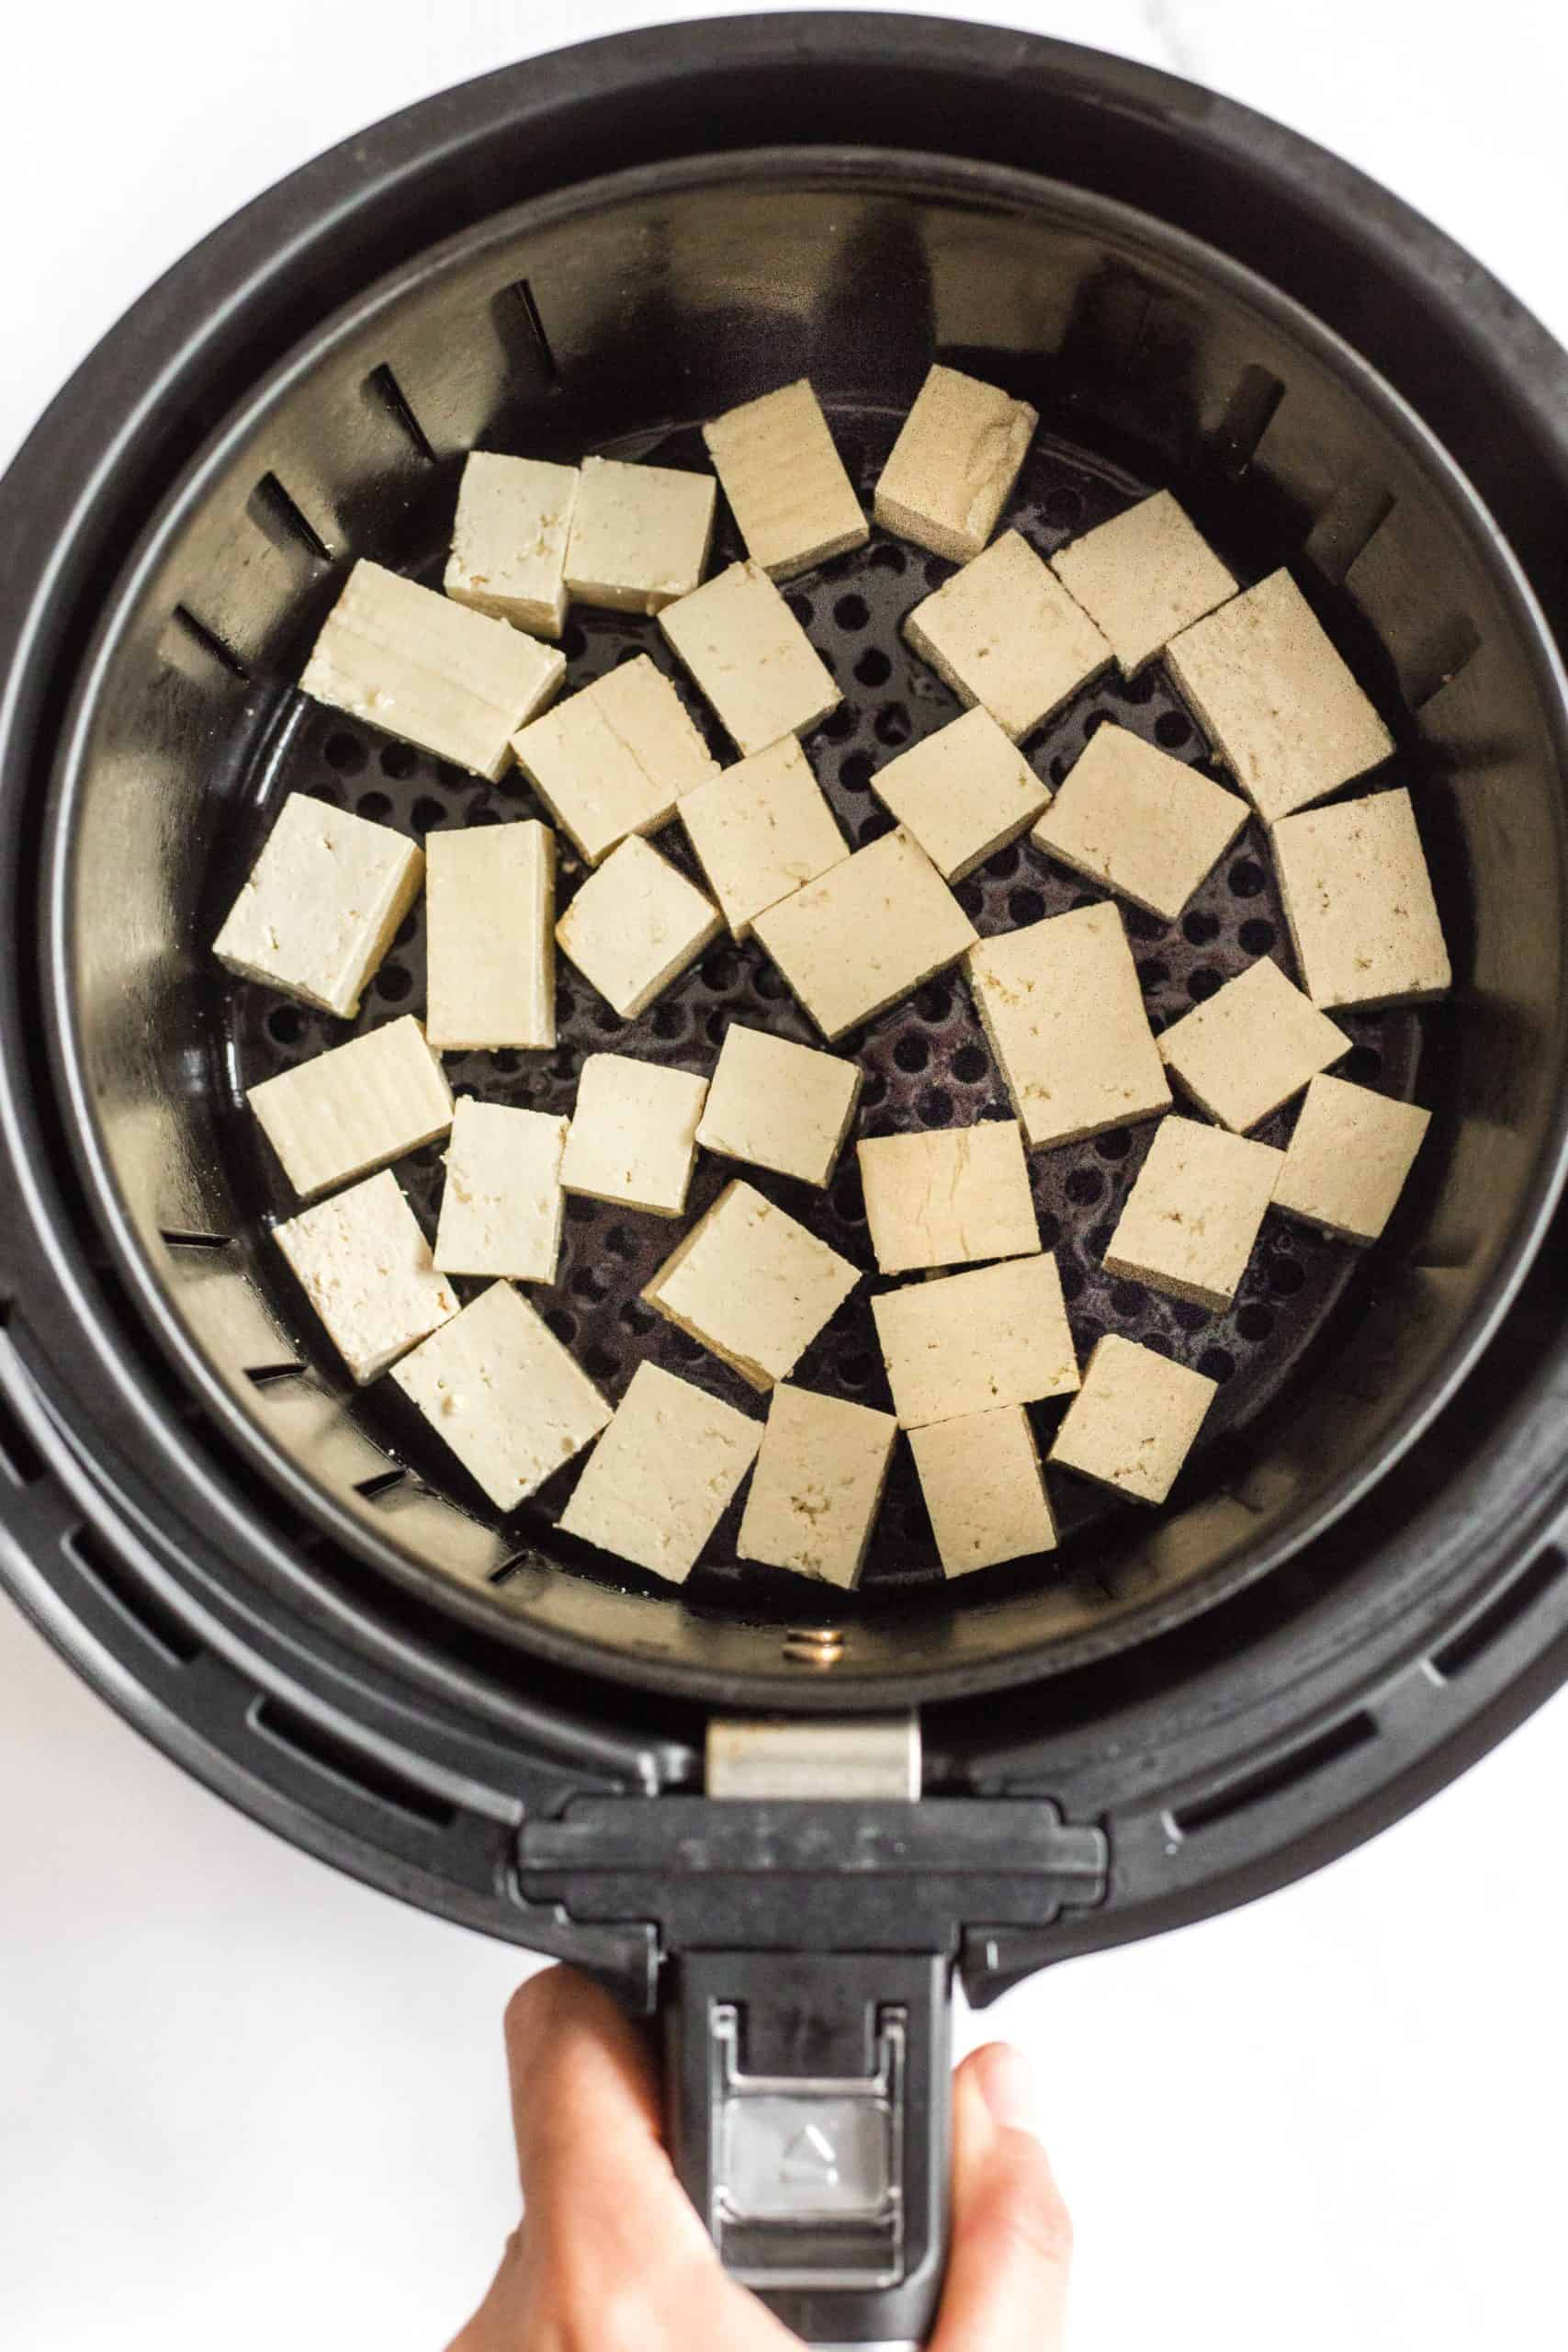 Tofu cubes in a single layer in the air fryer basket ready to be cooked.